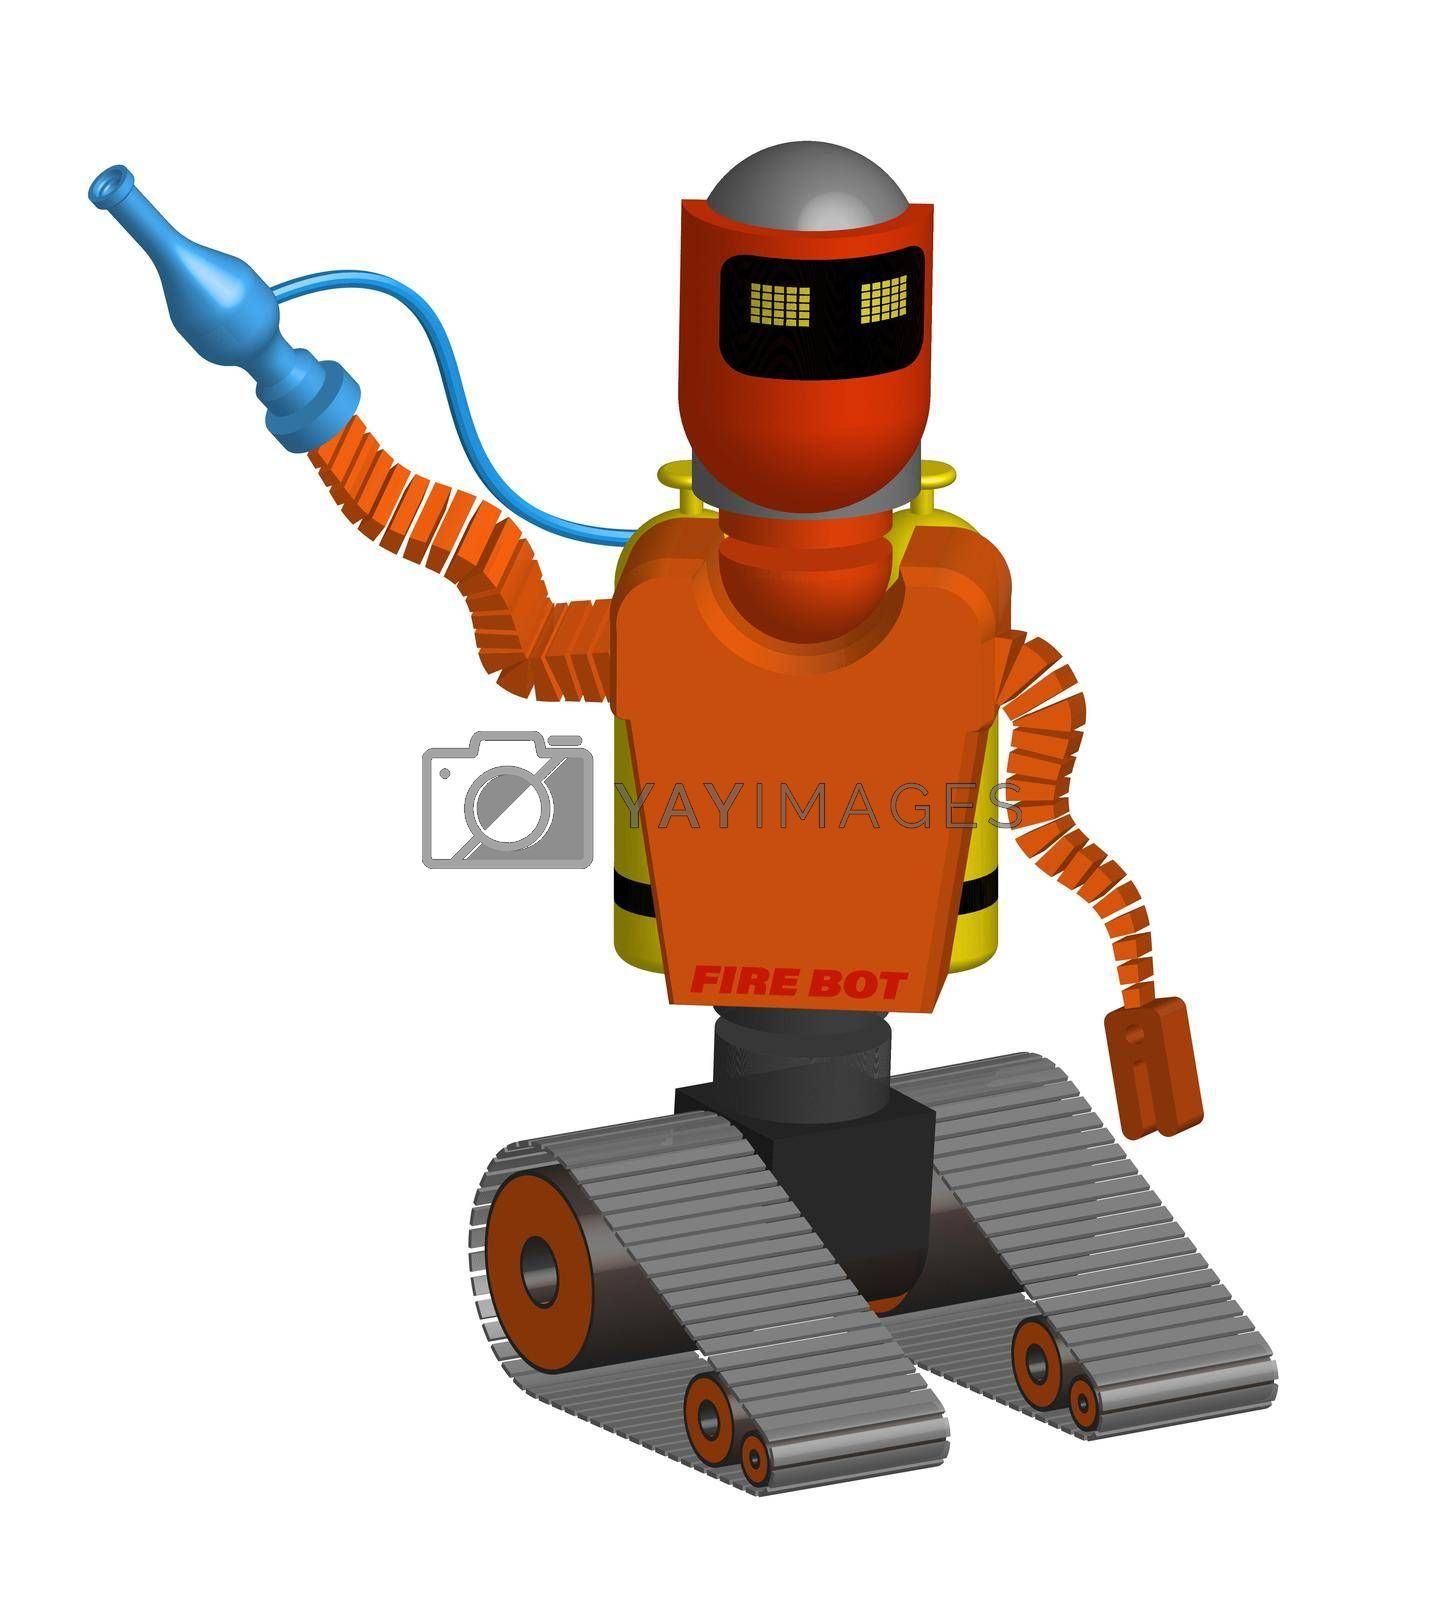 Royalty free image of caterpillar robot to extinguish a fire. Doing hazardous work with special equipment. Isolated vector on white background by RNko